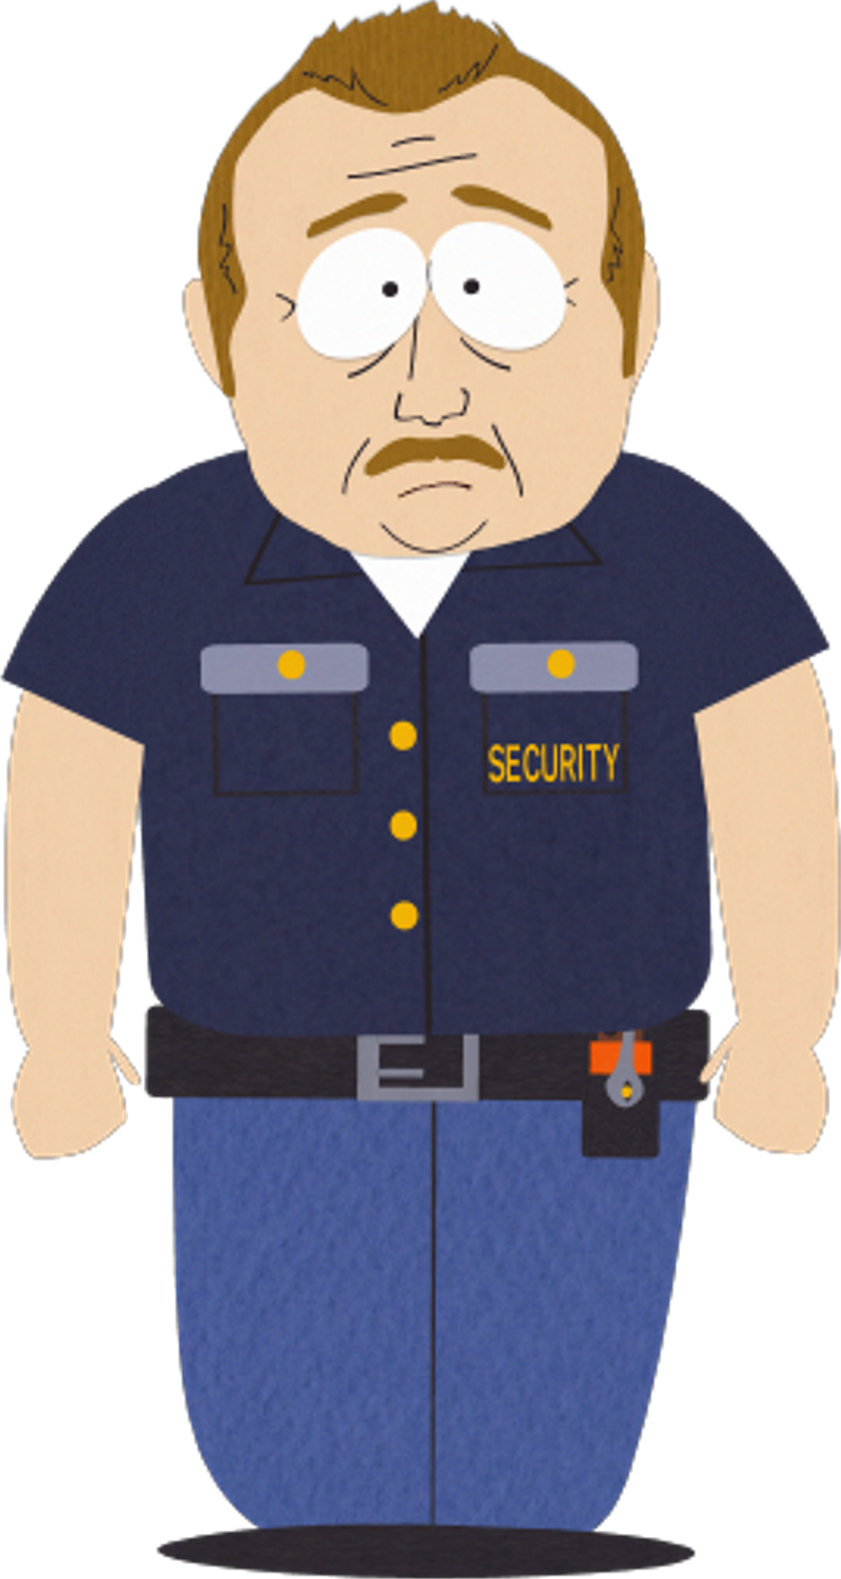 School security guard clipart graphic free download Security Guard | South Park Archives | FANDOM powered by Wikia graphic free download